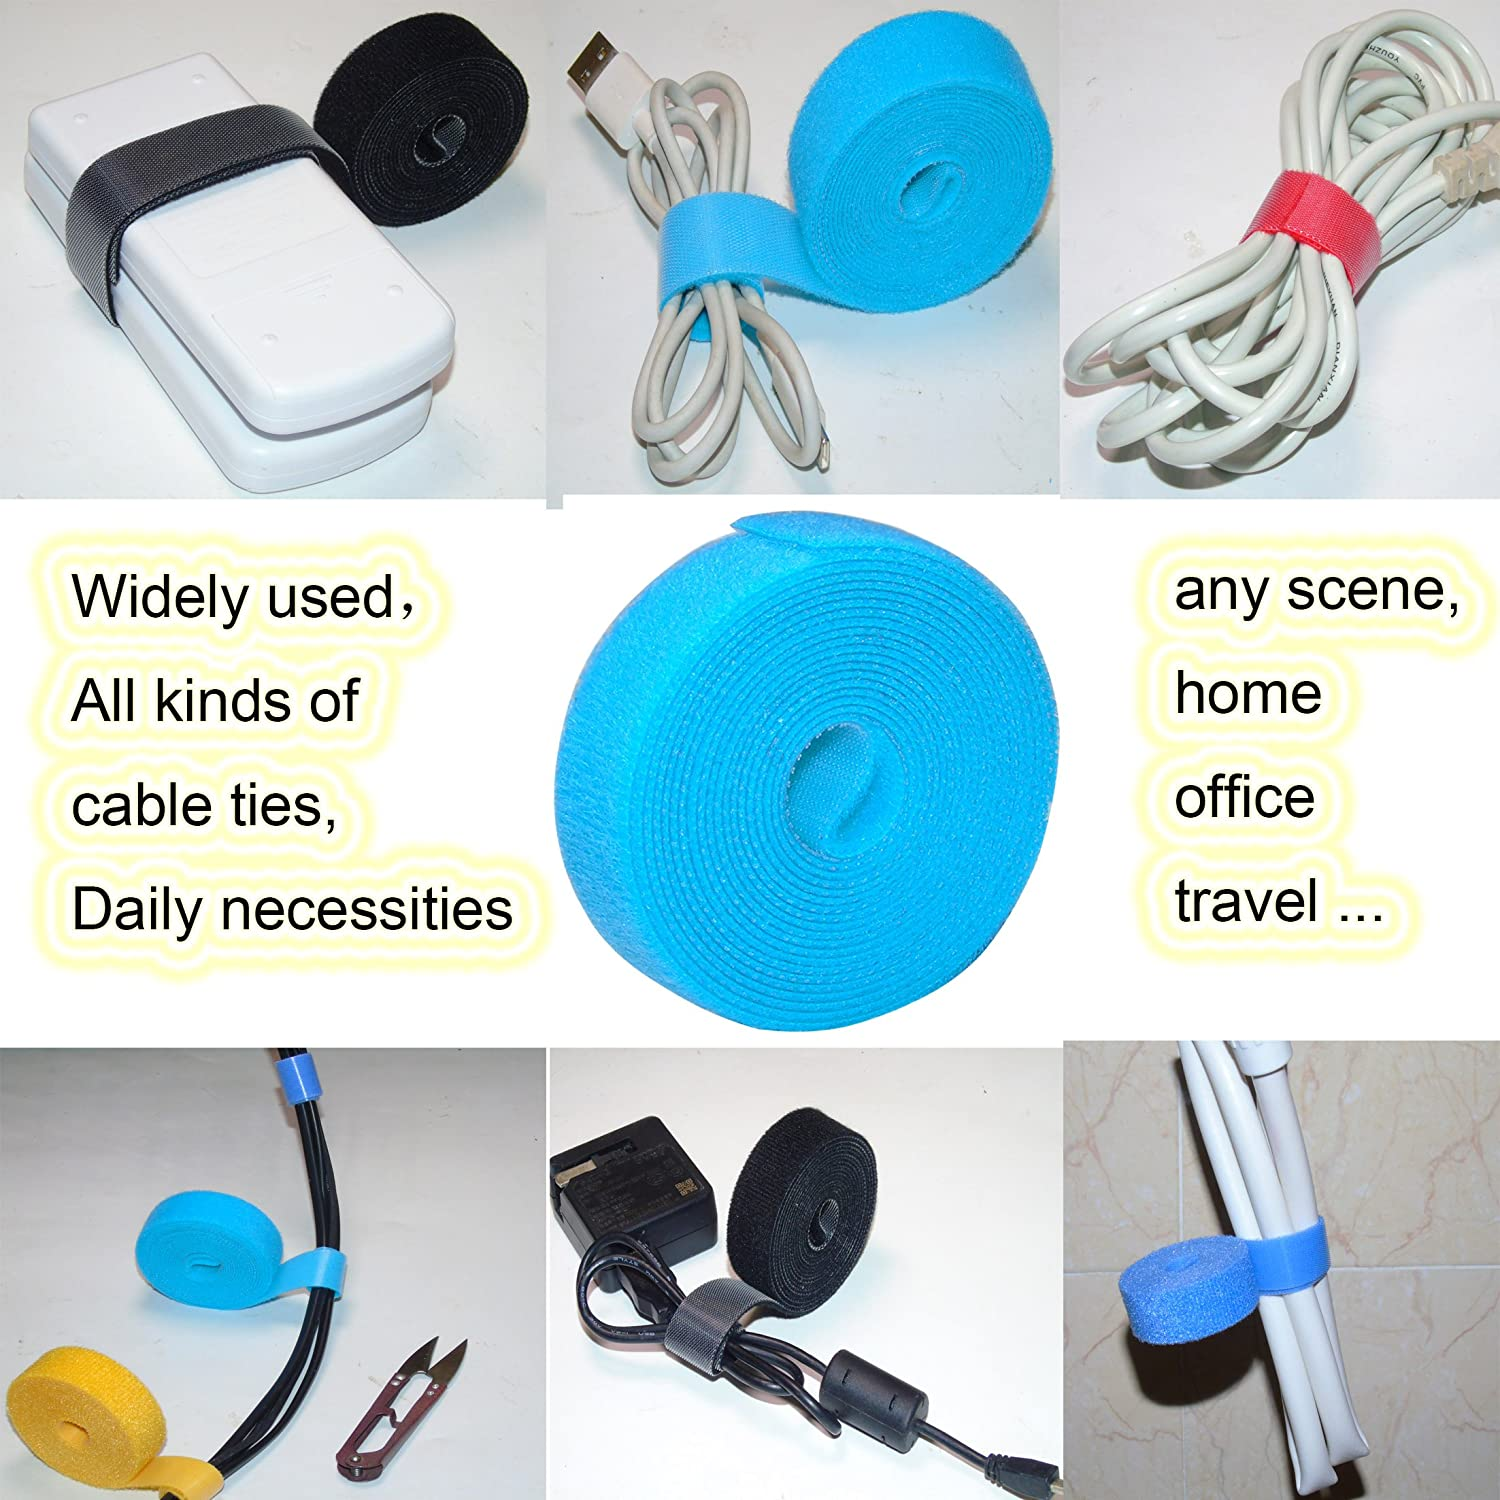 Ceeyali 6 Roll Reusable Cable Wire Organizer Straps Cable Management Ties for Cable Cord Wire Daily Goods Management Large Width 2cm